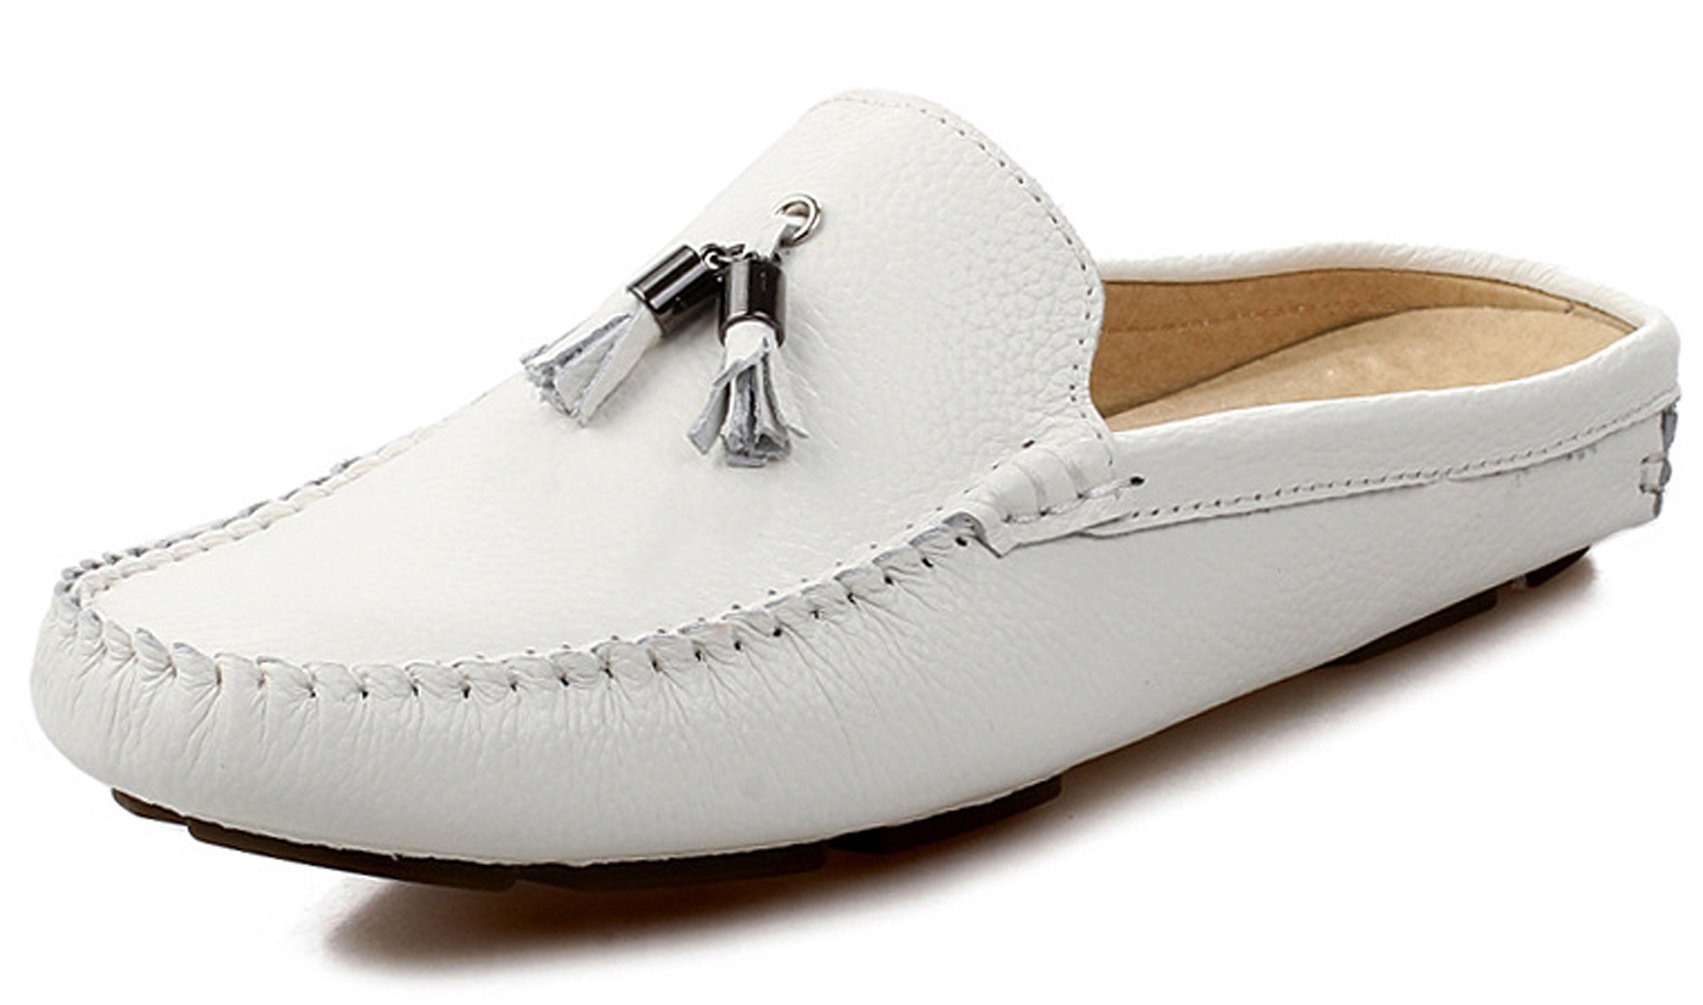 Santimon Men's Slippers Mules Clogs Tassel Leather Comfortable Slip on Shoes Casual Loafters White 8.5 D(M) US